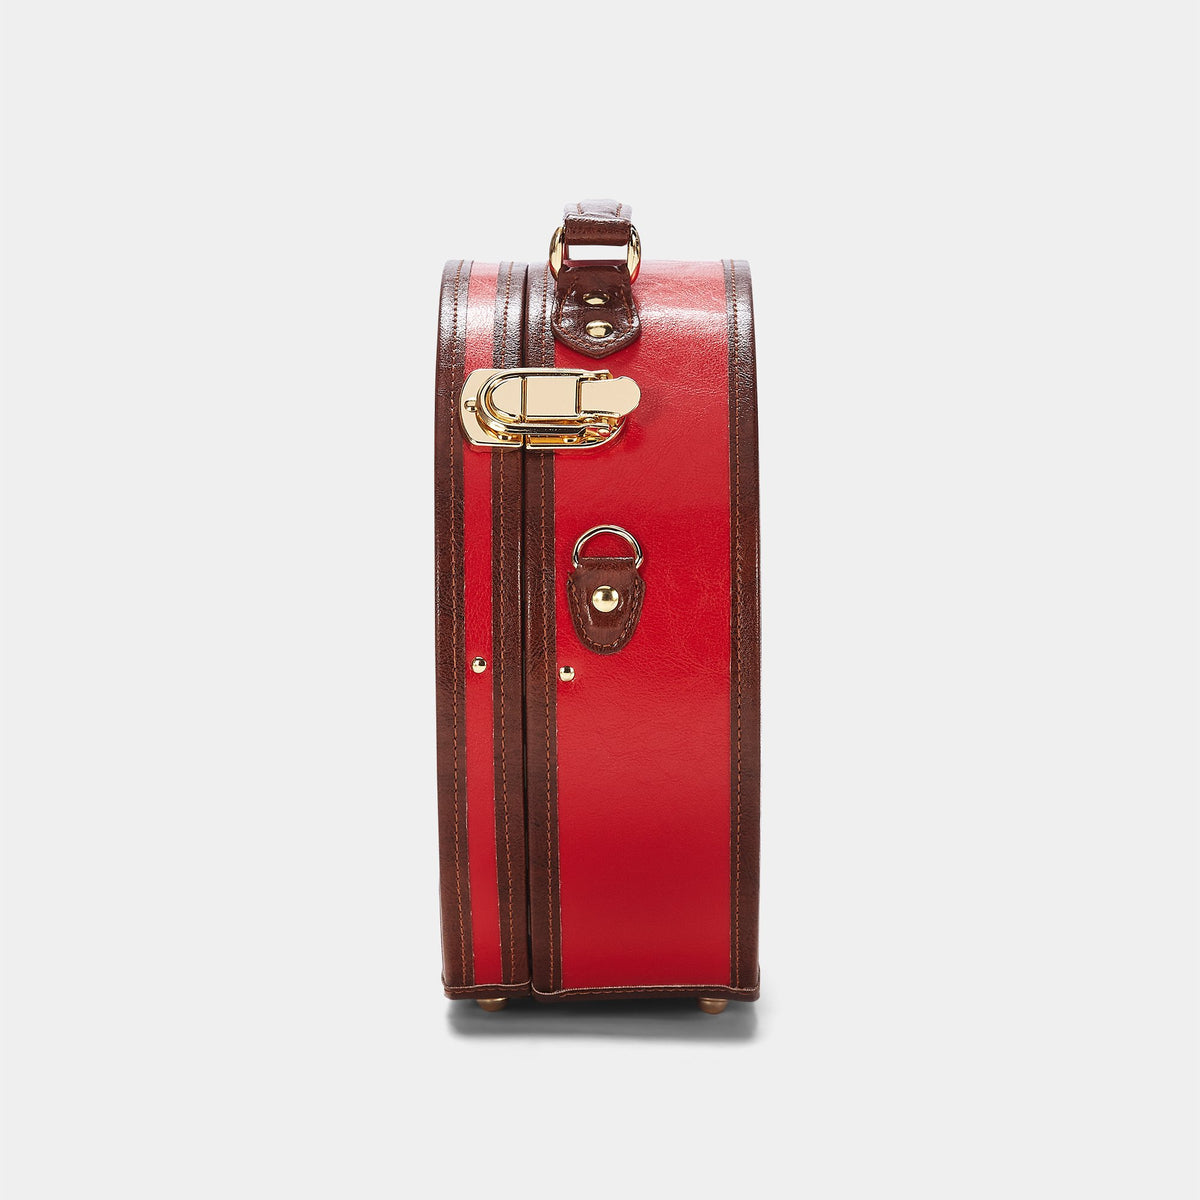 The Entrepreneur Hatbox Small in Red - Hat Box Luggage - Exterior Side